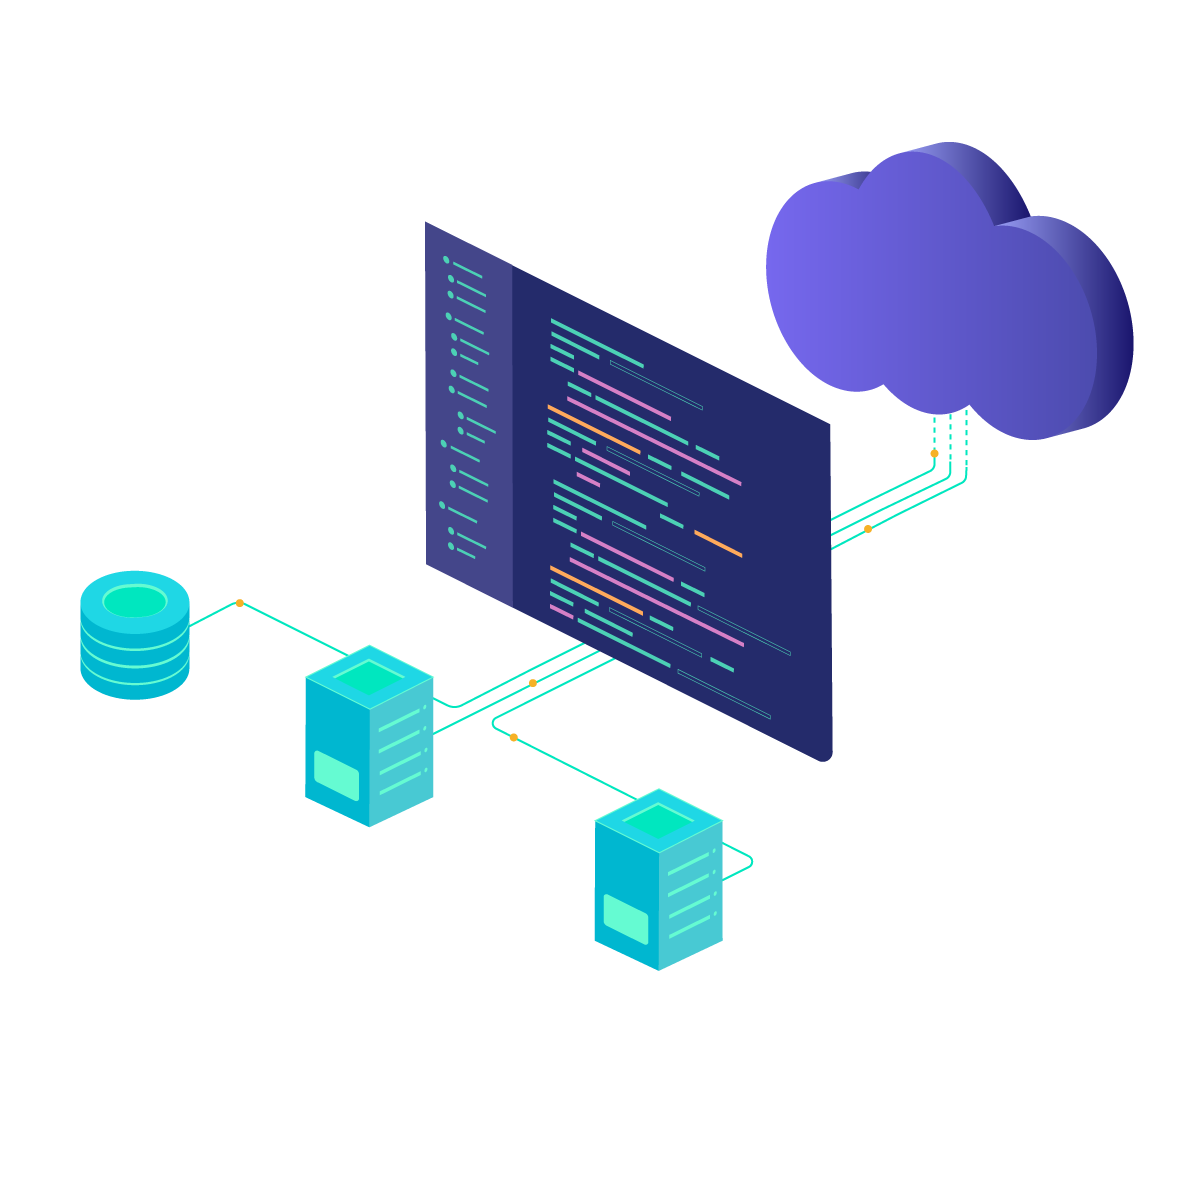 API connected with cloud, database and virtual machines